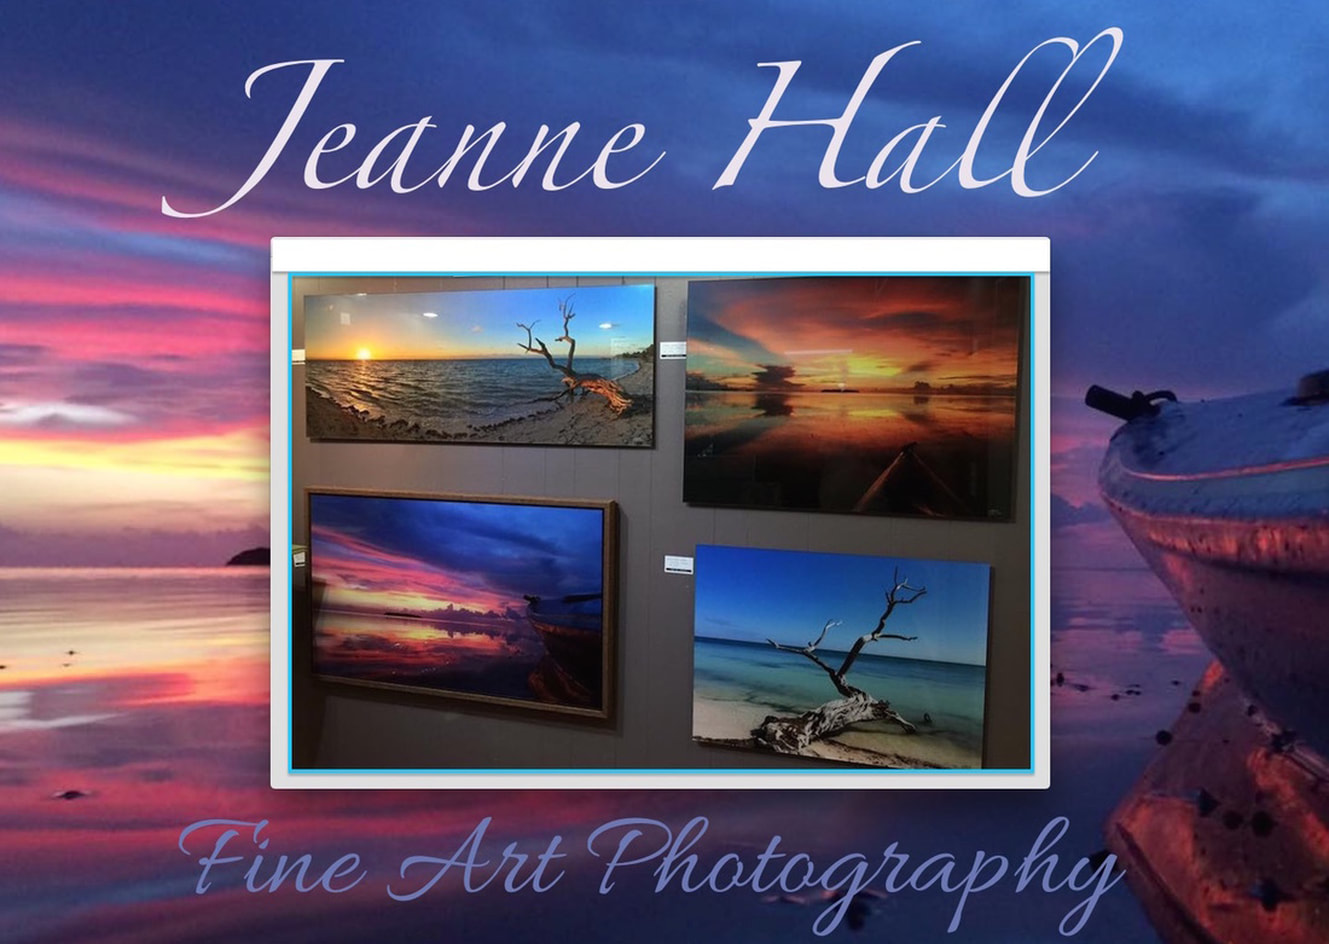 Jeanne Hall fine art photography